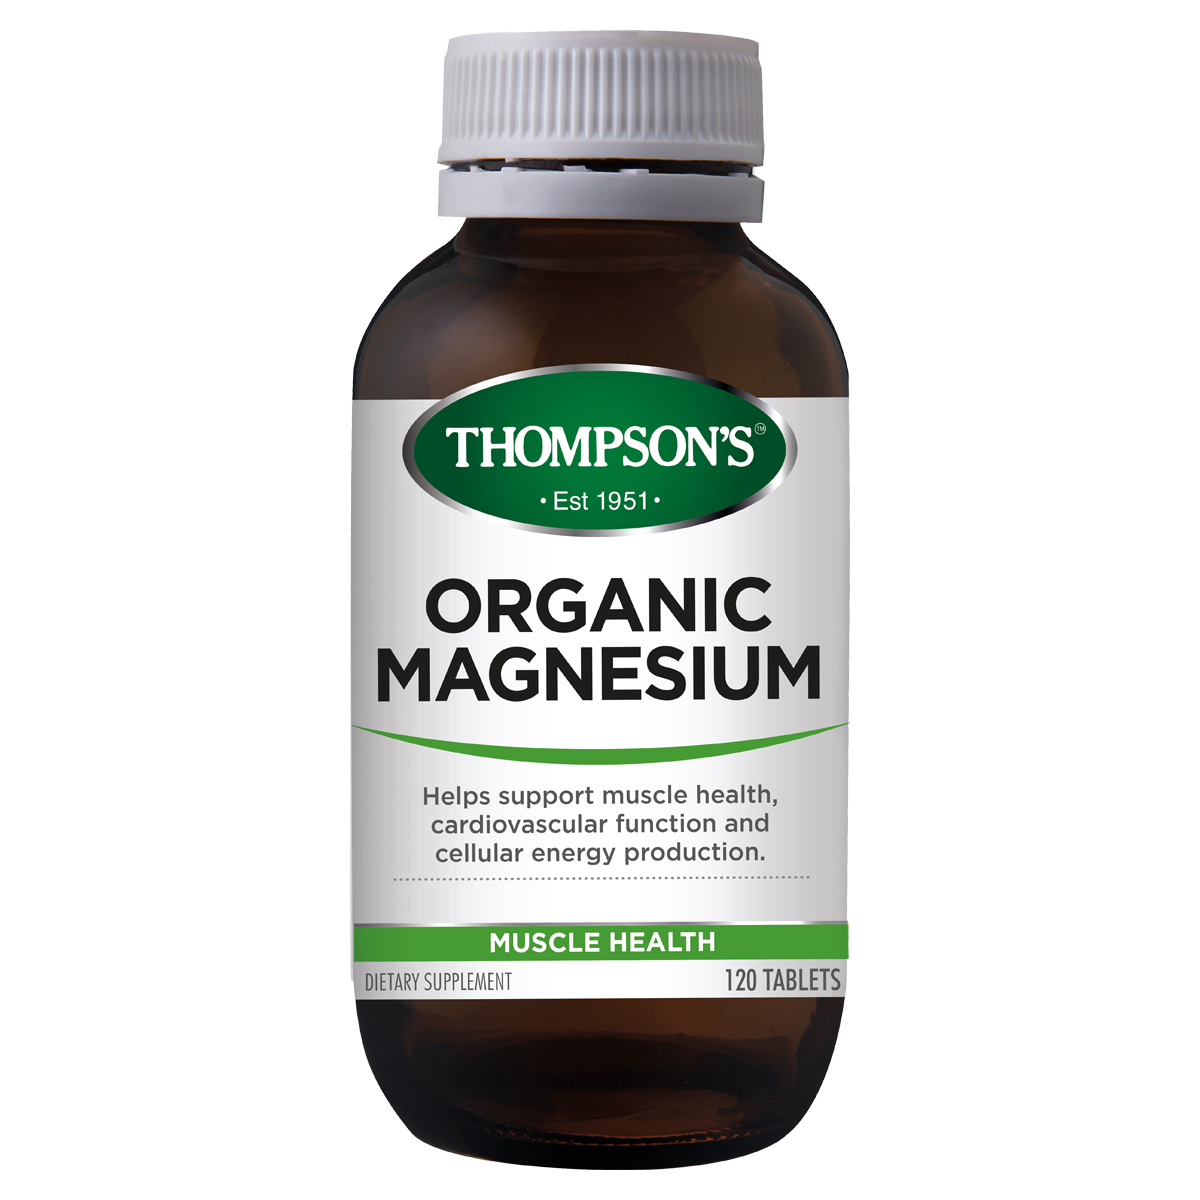 Thompsons Magnesium Organic 120 Tablets